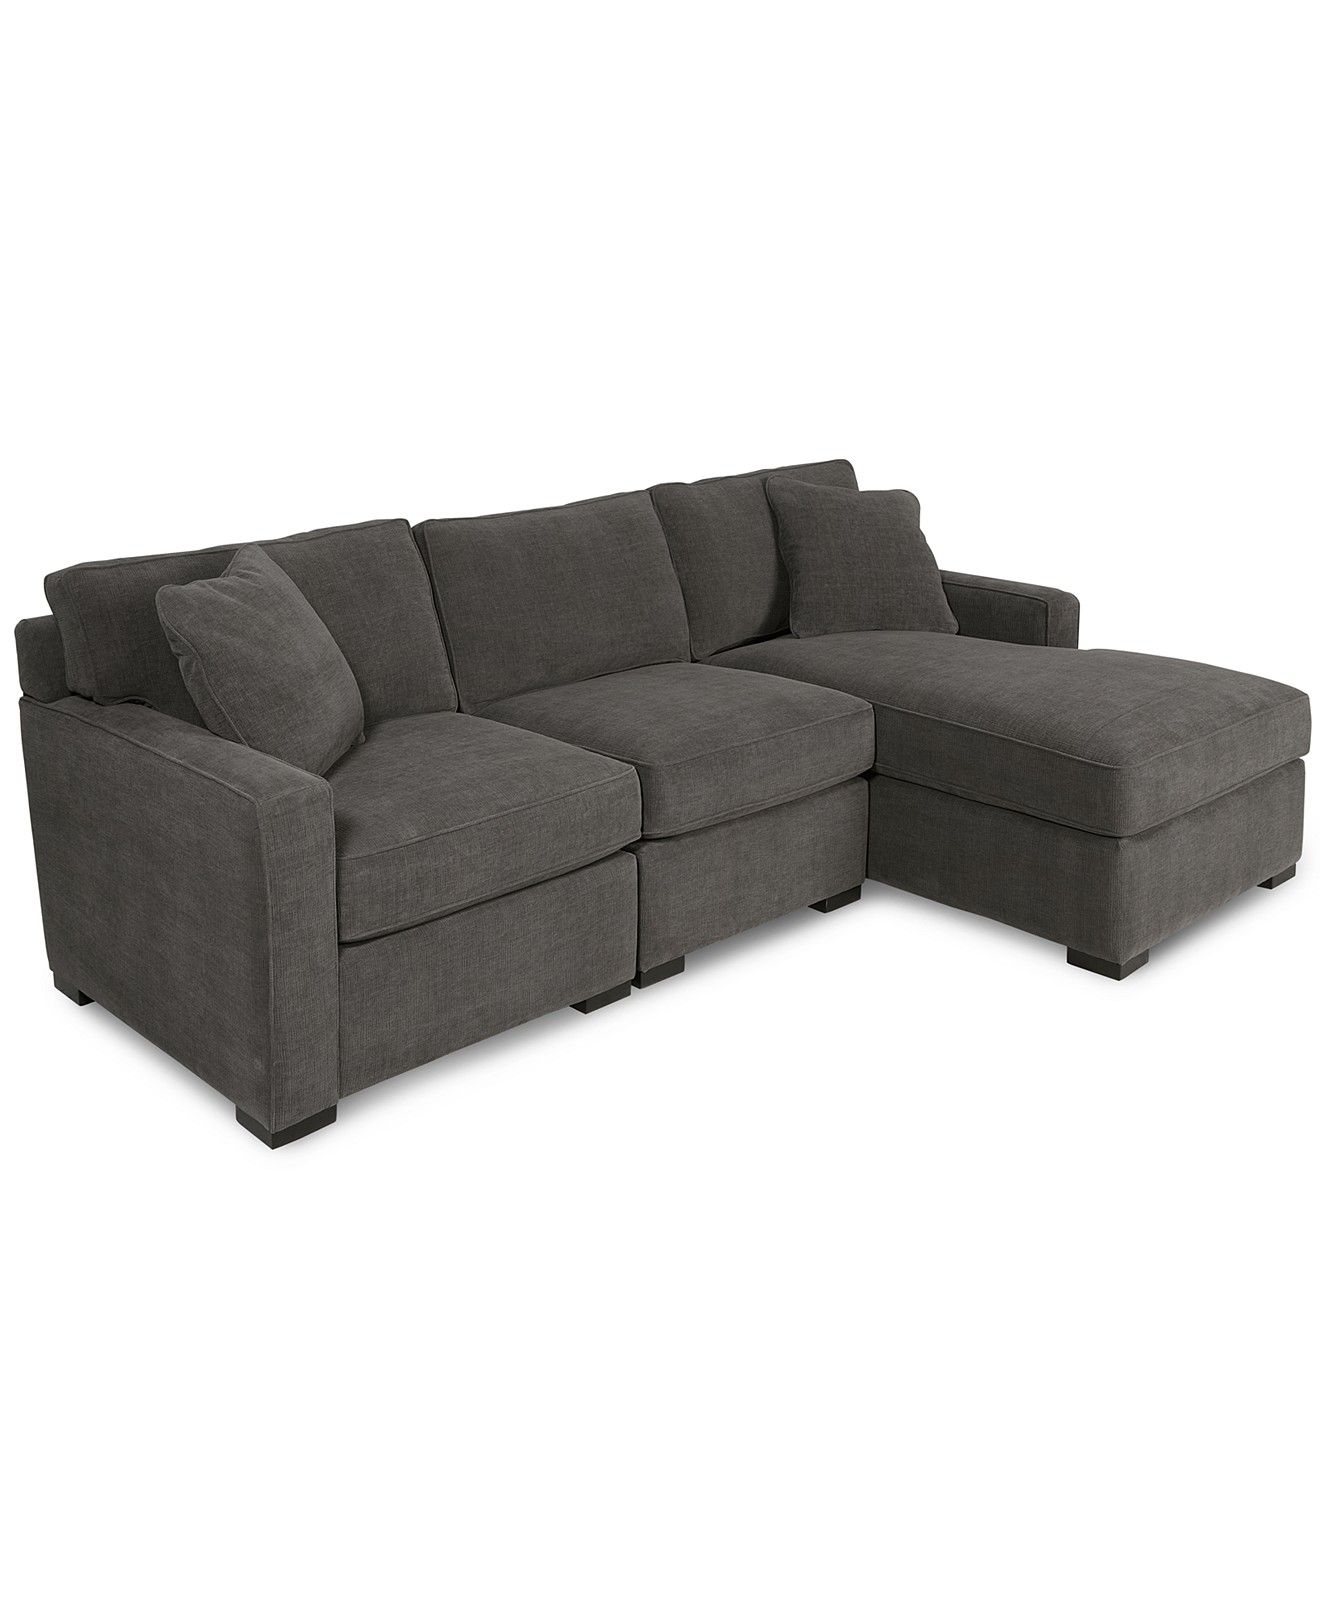 Radley 3 Piece Fabric Chaise Sectional Sofa Created for Macy s